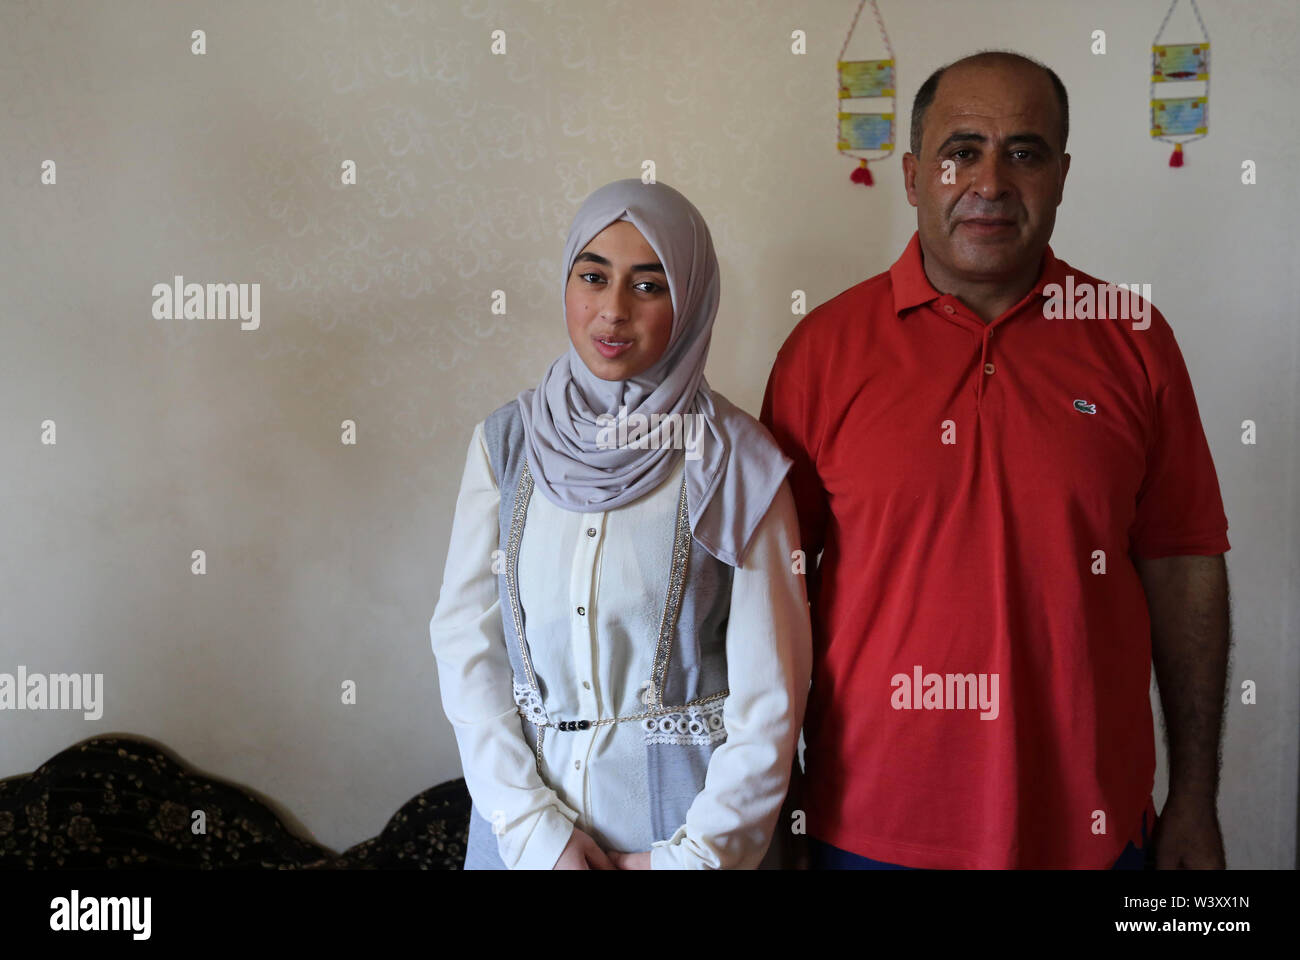 Al Huda Stock Photos & Al Huda Stock Images - Alamy